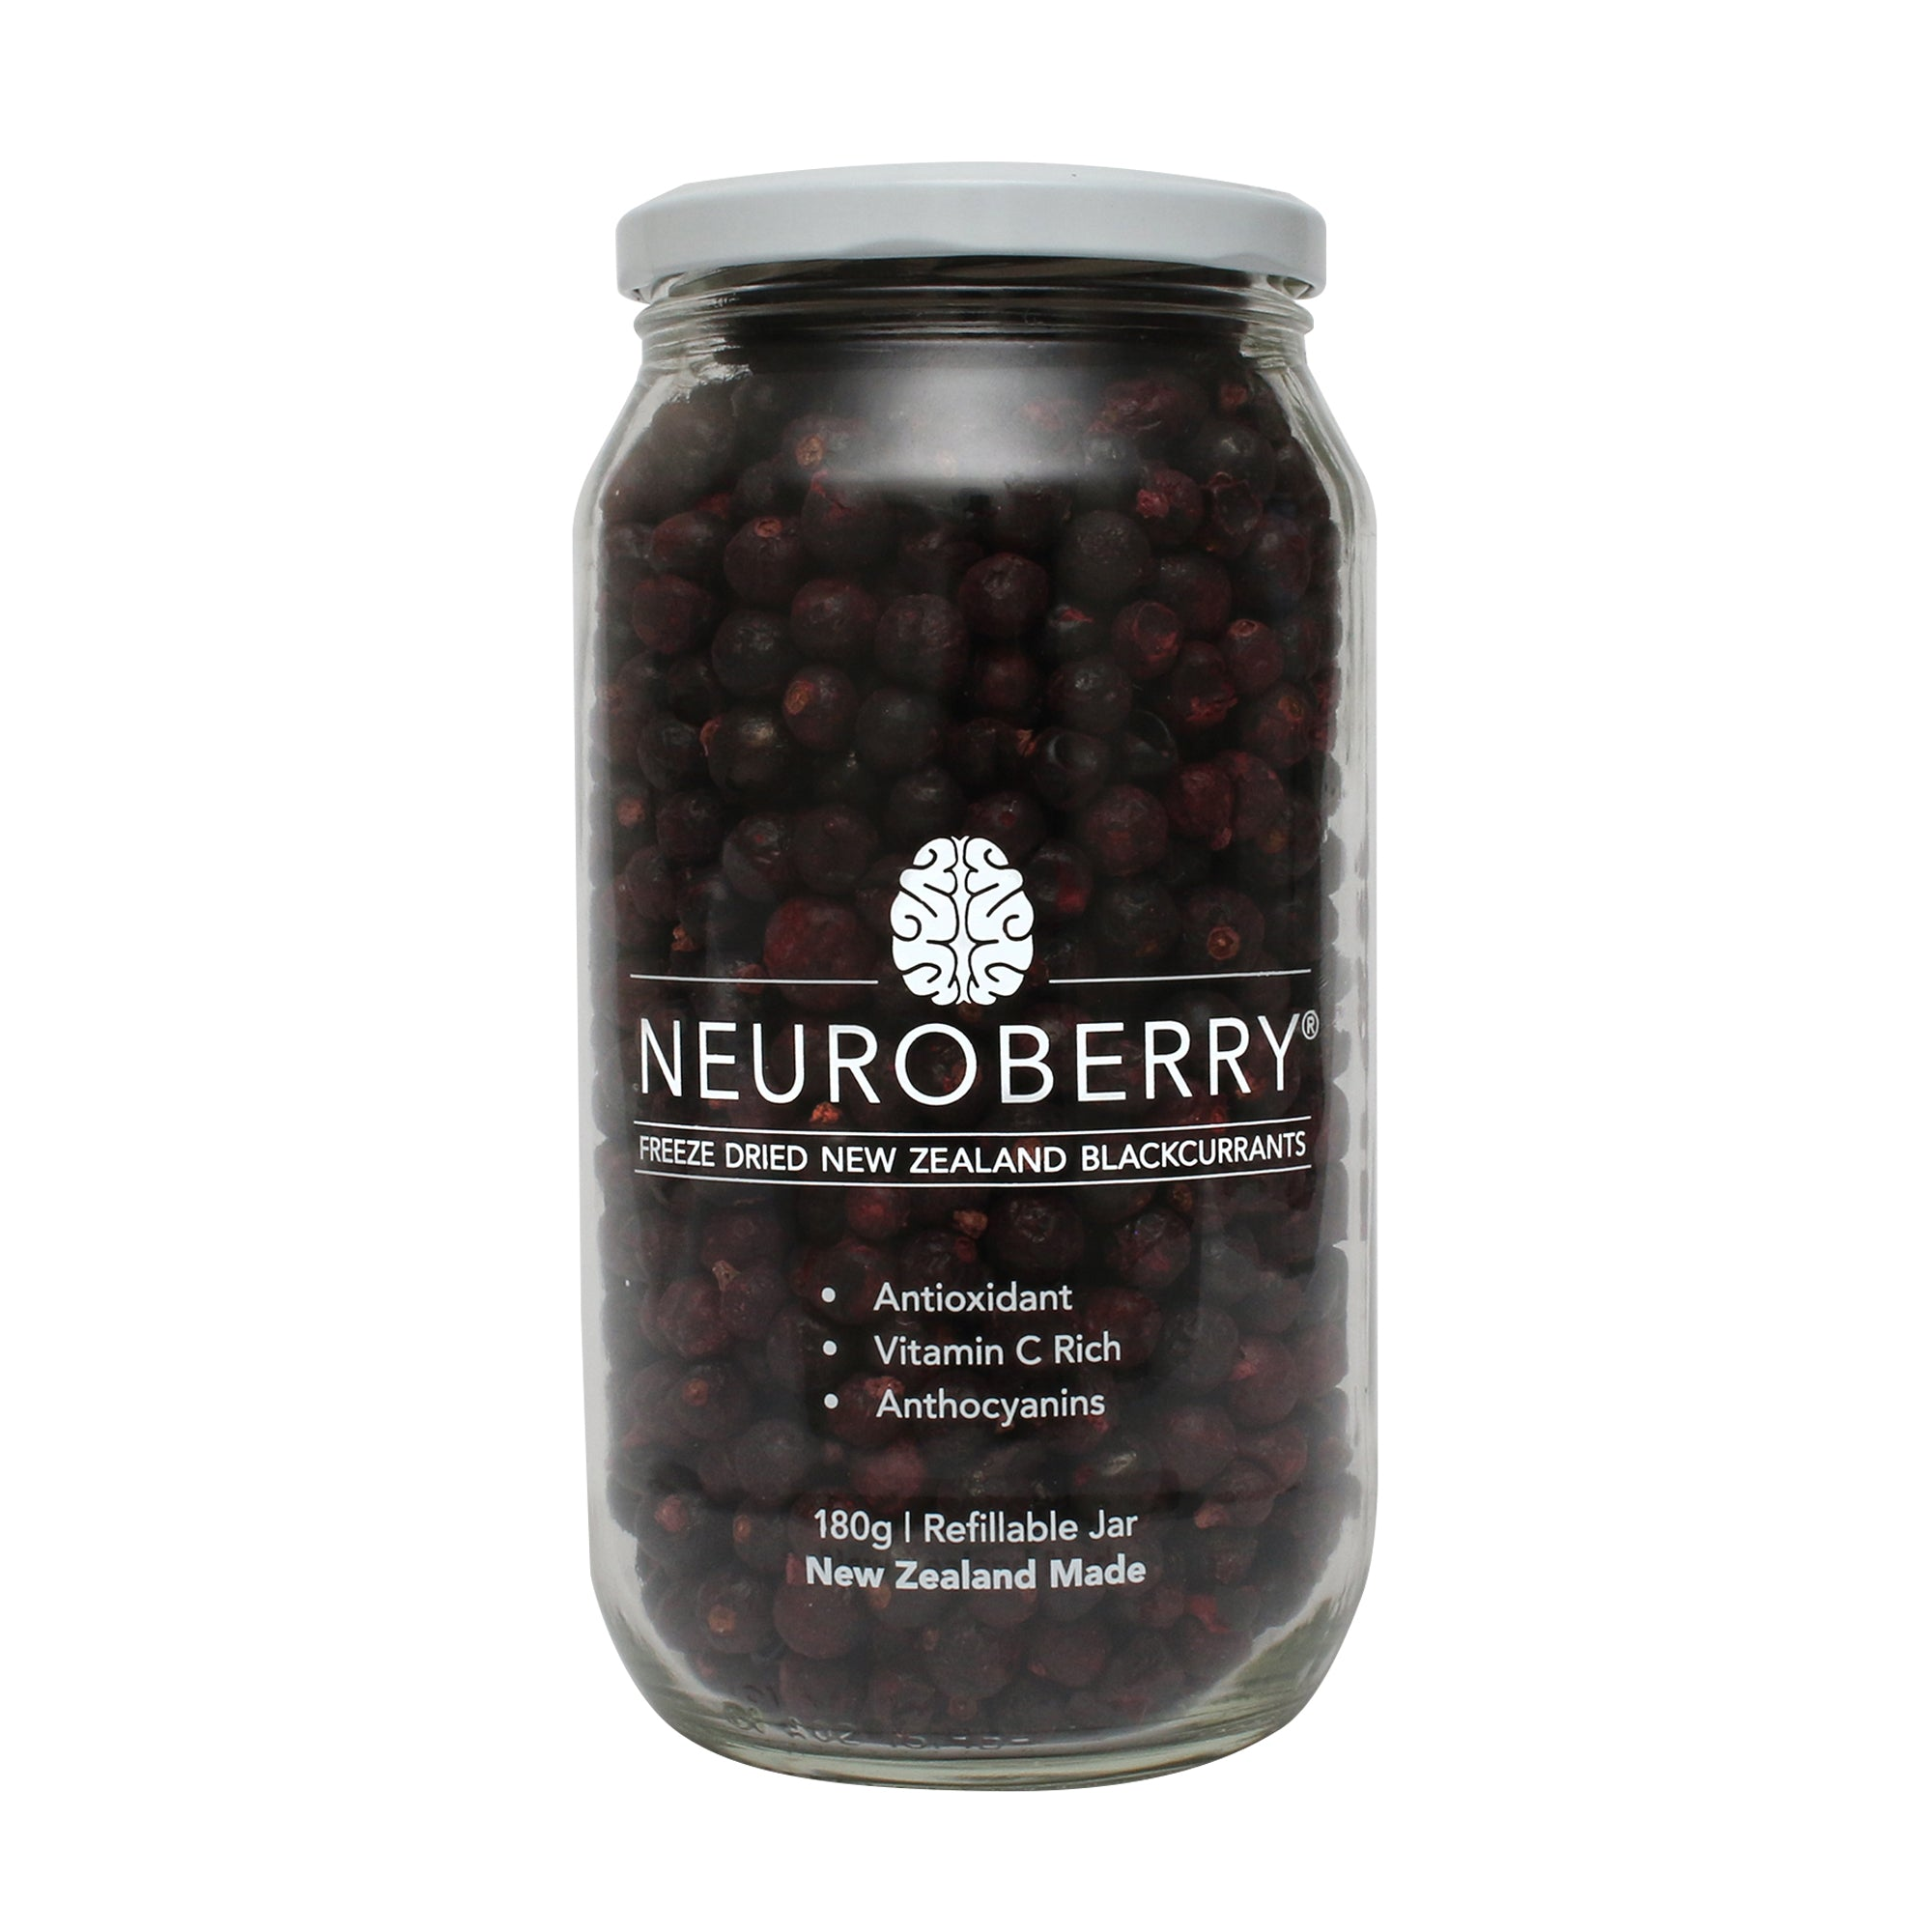 Freeze Dried Neuroberry® - Drink Ārepa, For Mental Clarity |  Natural Nootropic | Nootropic Drink | Brain Drink | Performance Drink | Nootropics NZ | Enzogenol | L theanine NZ | | Health Drink | Brain Food | Braintenance | Nootropic Powder | Neuroberry | Blackcurrant Drink | Pine Bark Extract | Blackcurrant Extract